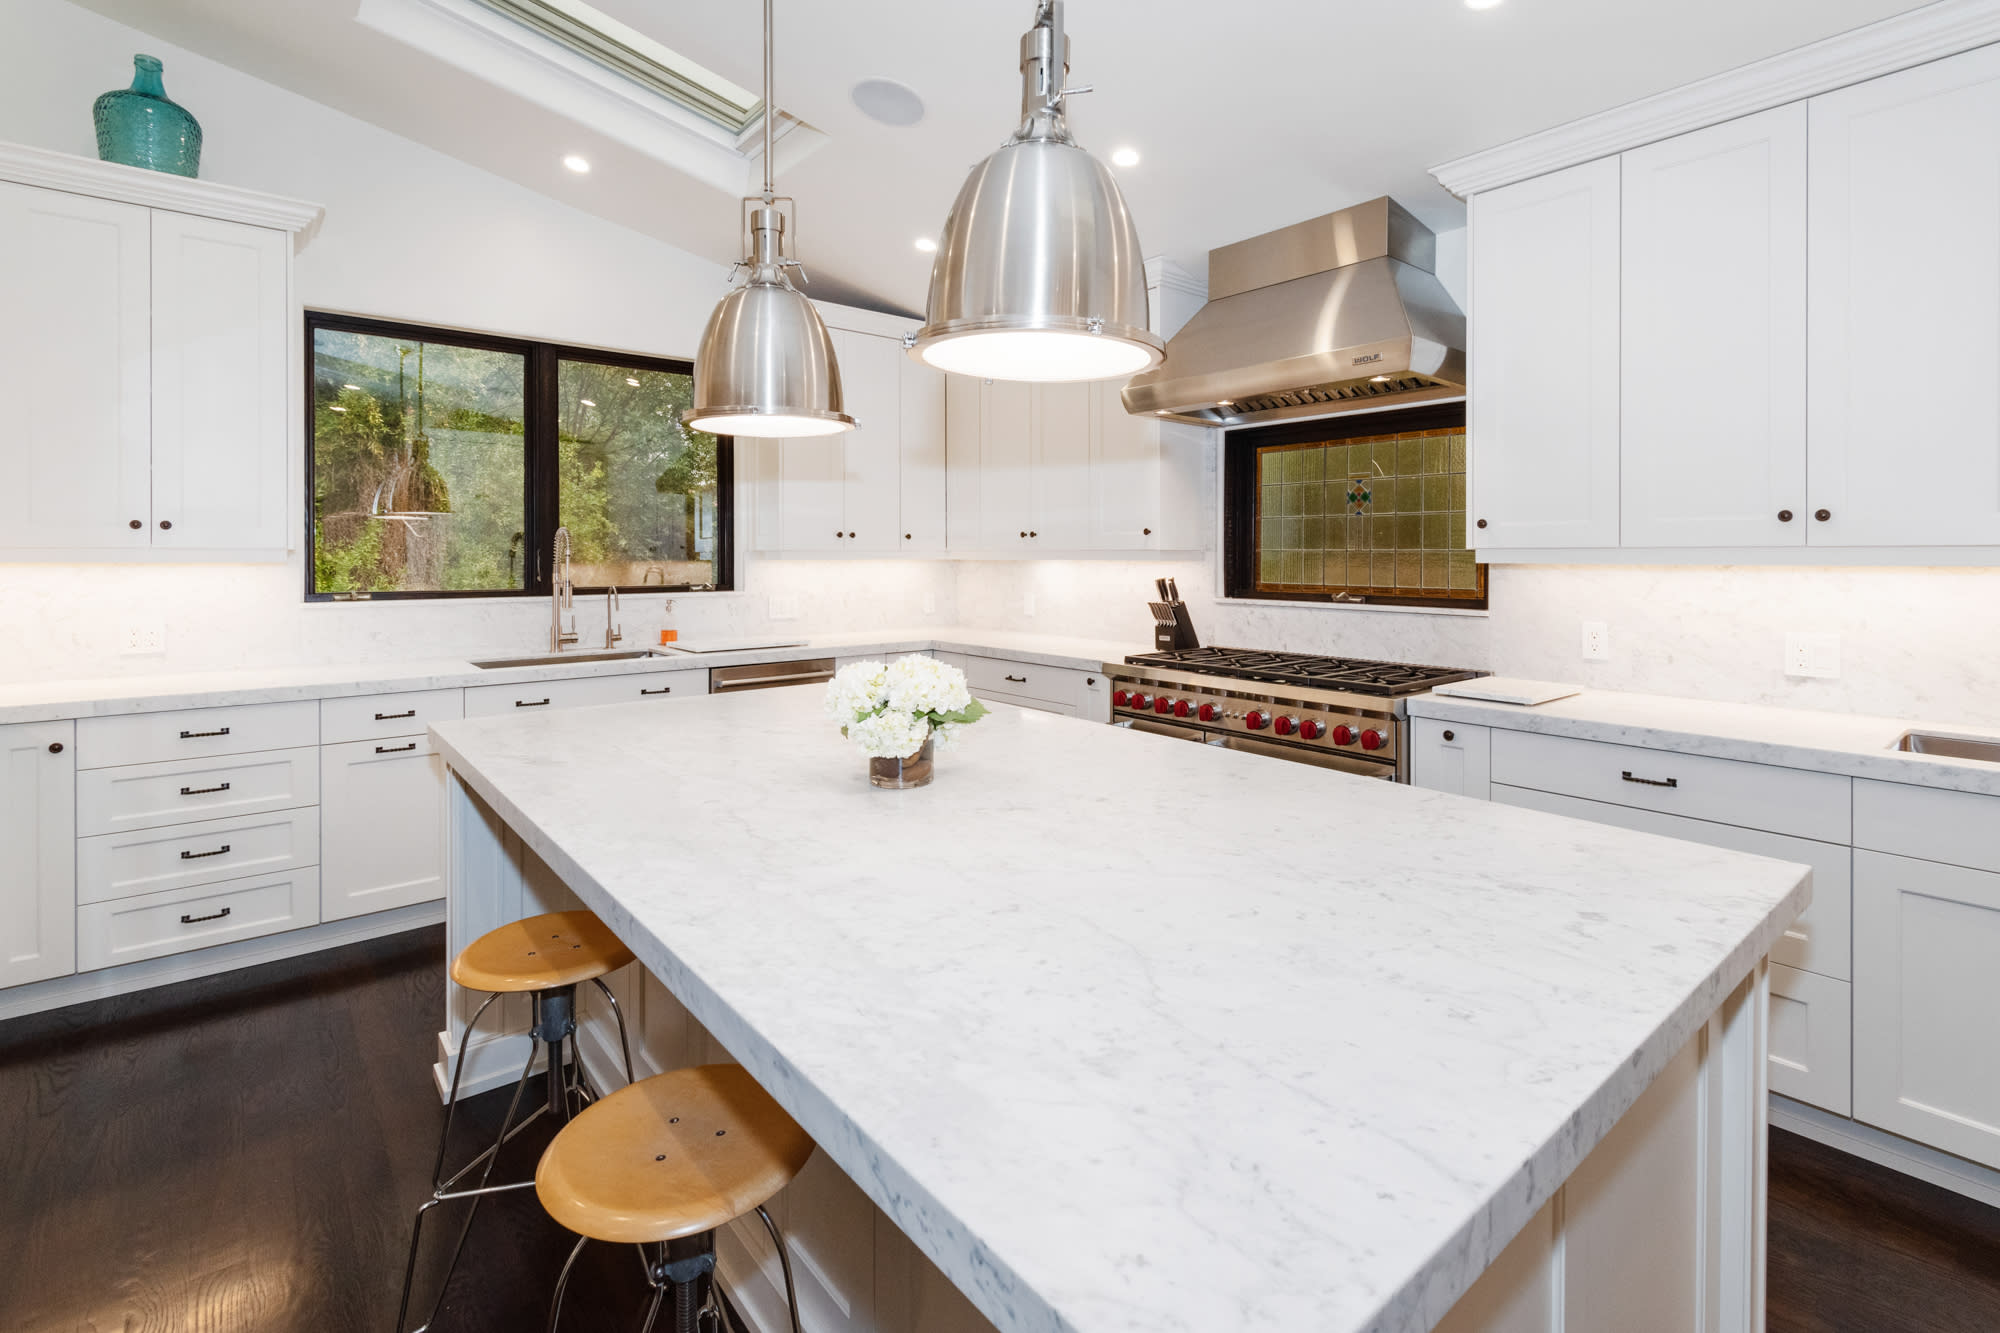 aj mclean's former los angeles house kitchen